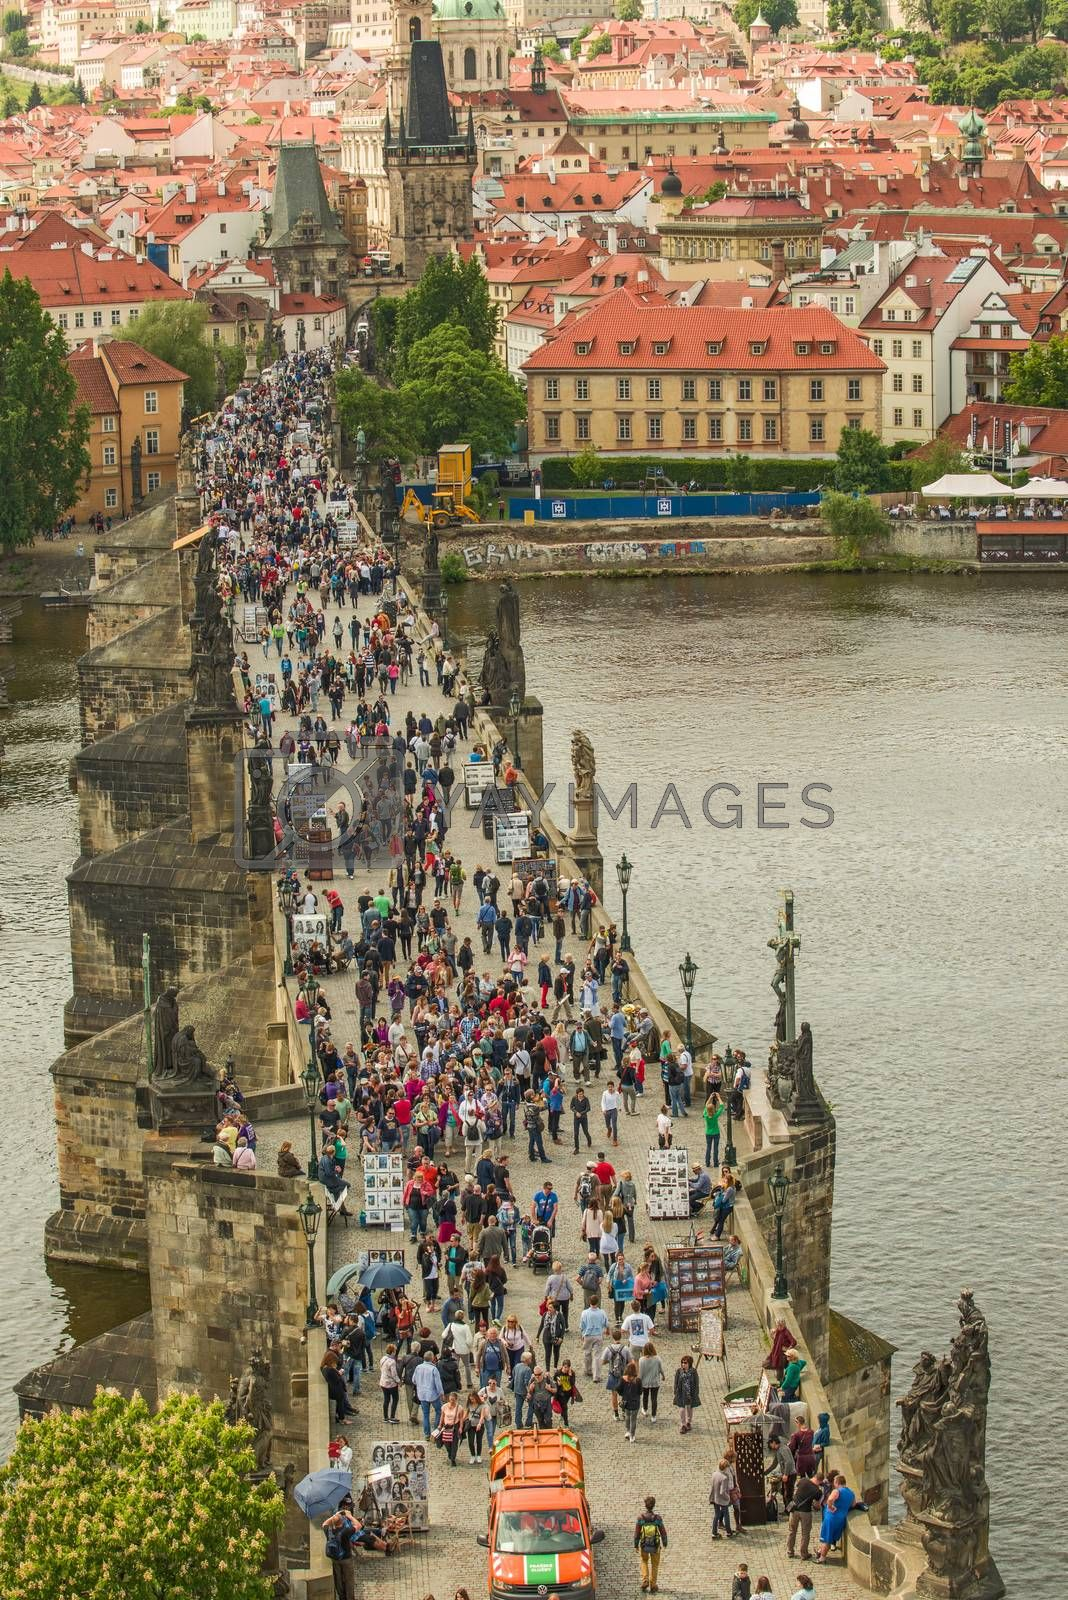 PRAGUE, CZECH REPUBLIC - MAY 22, 2015: Tourists Crossing Charles Bridge, Famous Attraction in Czech Republic Capital. Prague was visited by more than 8 million people in 2014.